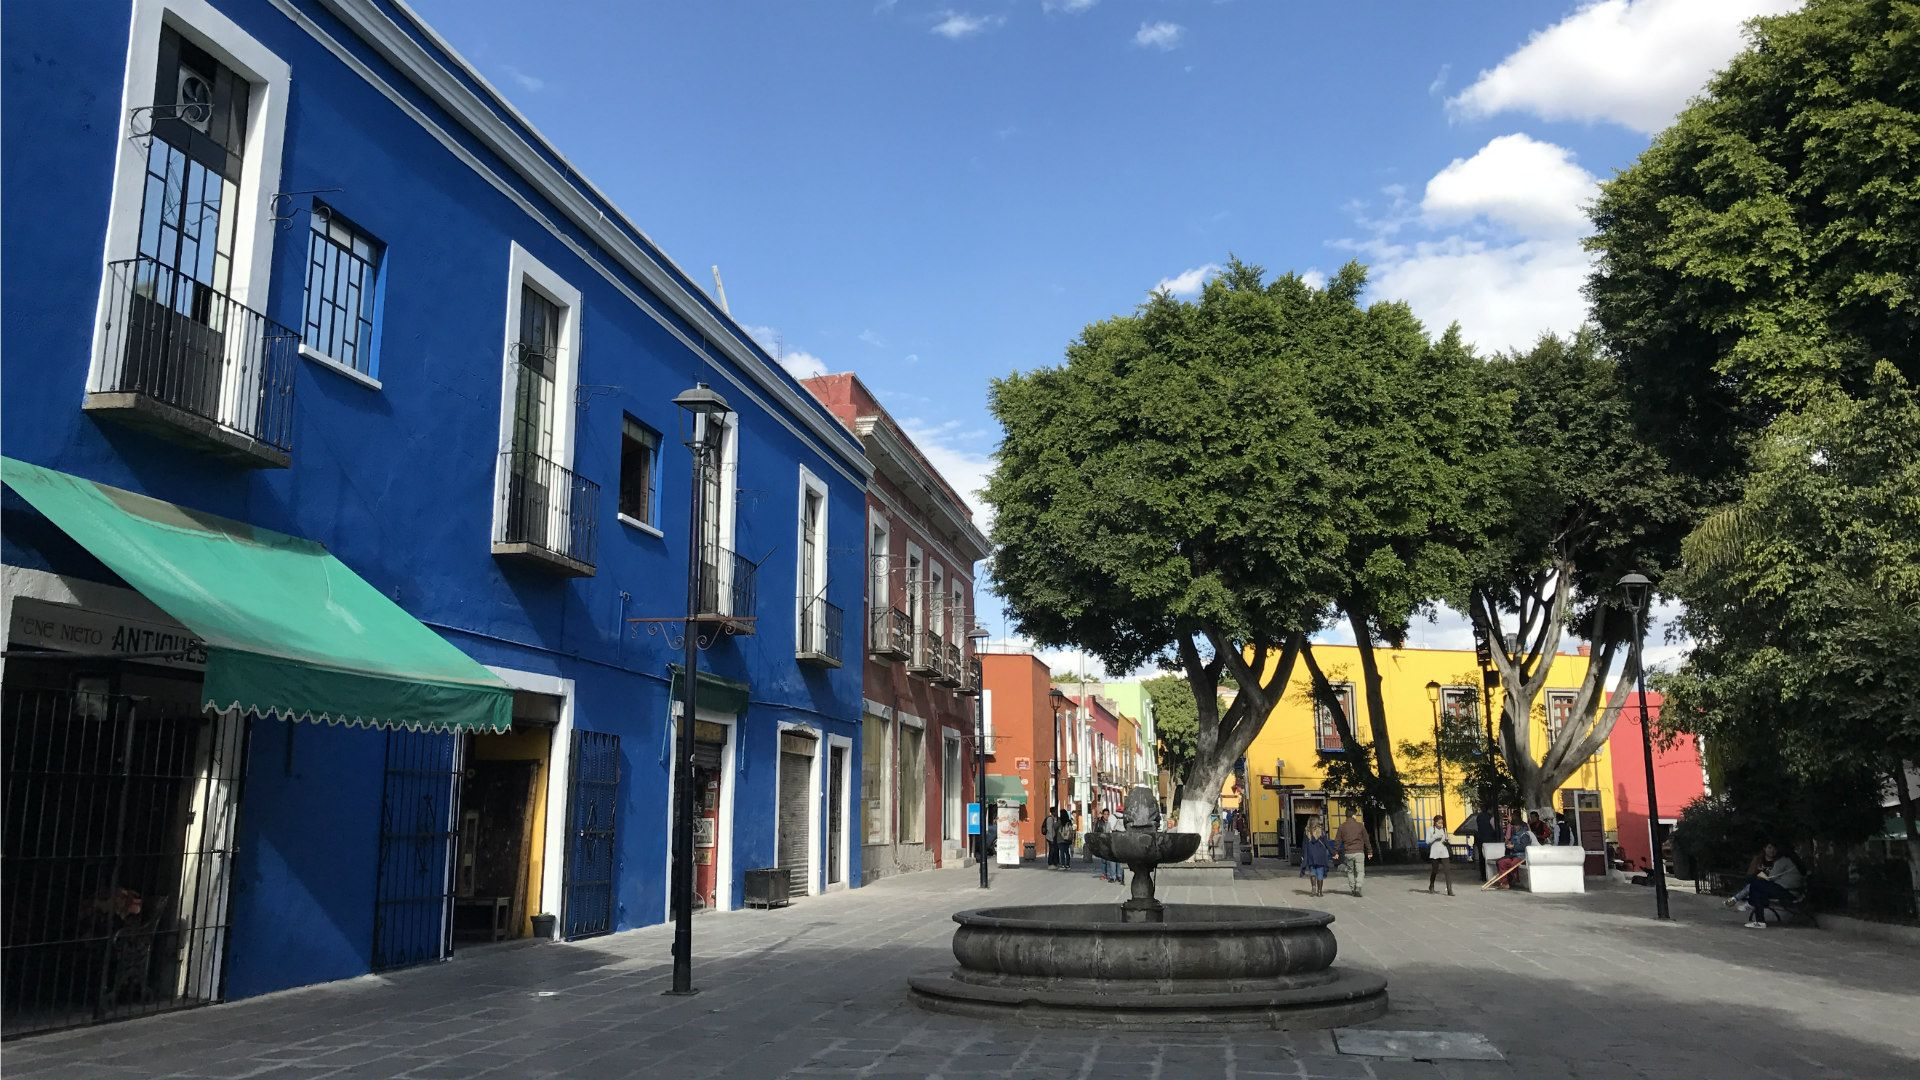 Pin by Kristen Acosta on Puebla Mexico city, Day trips